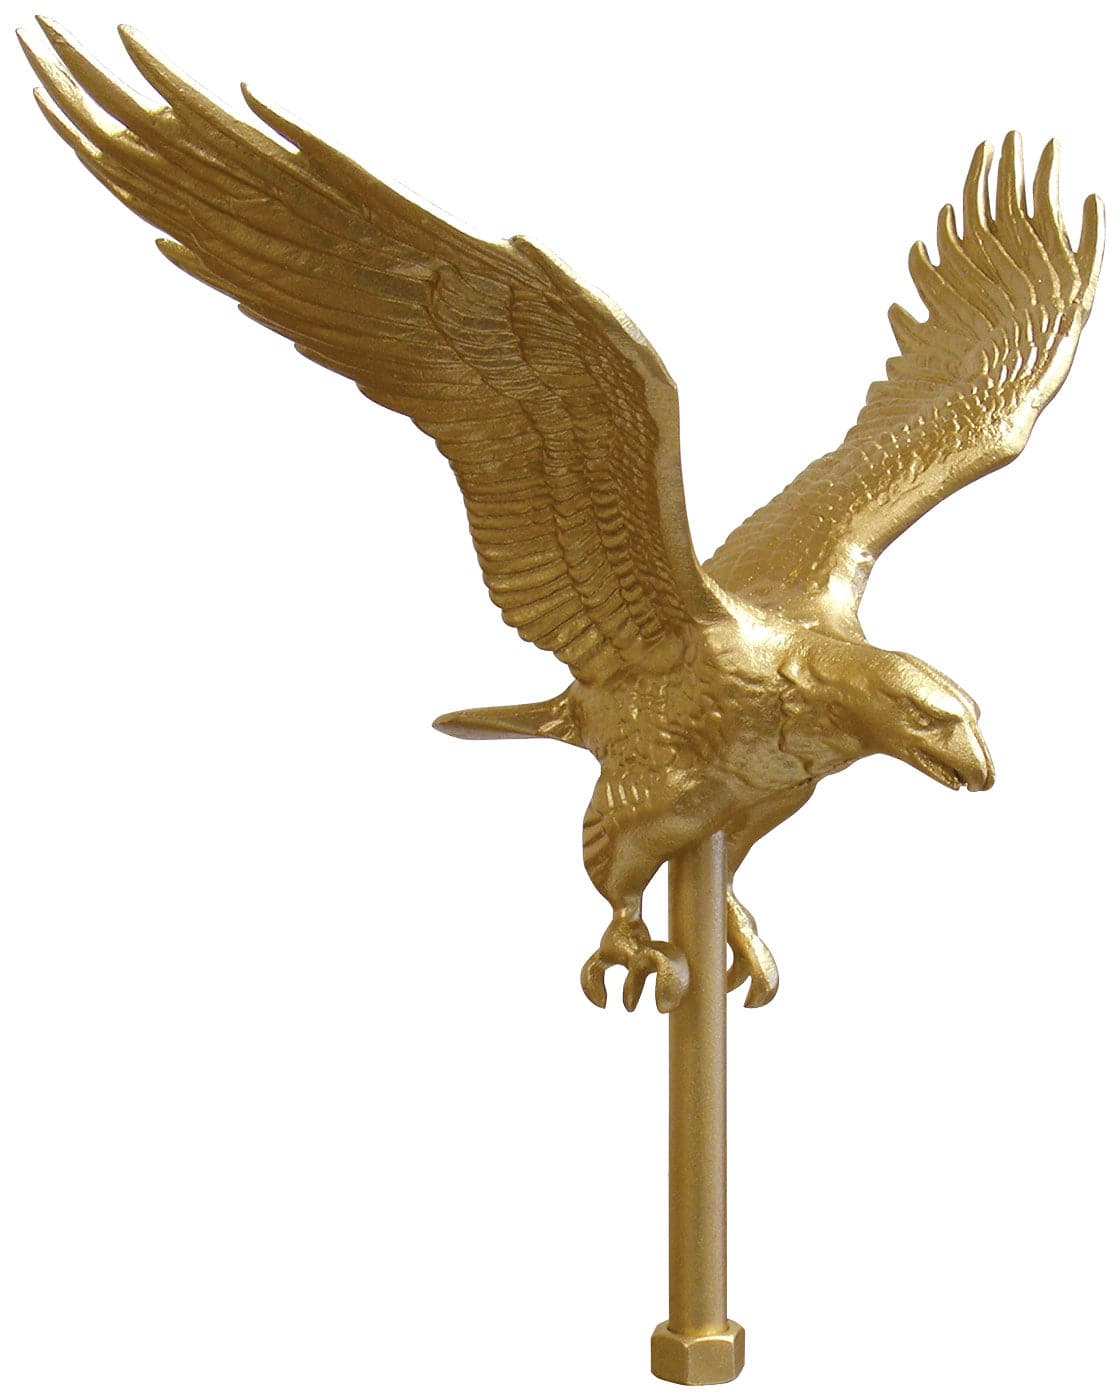 Eagle Flagpole Ornament - Gold Anodized